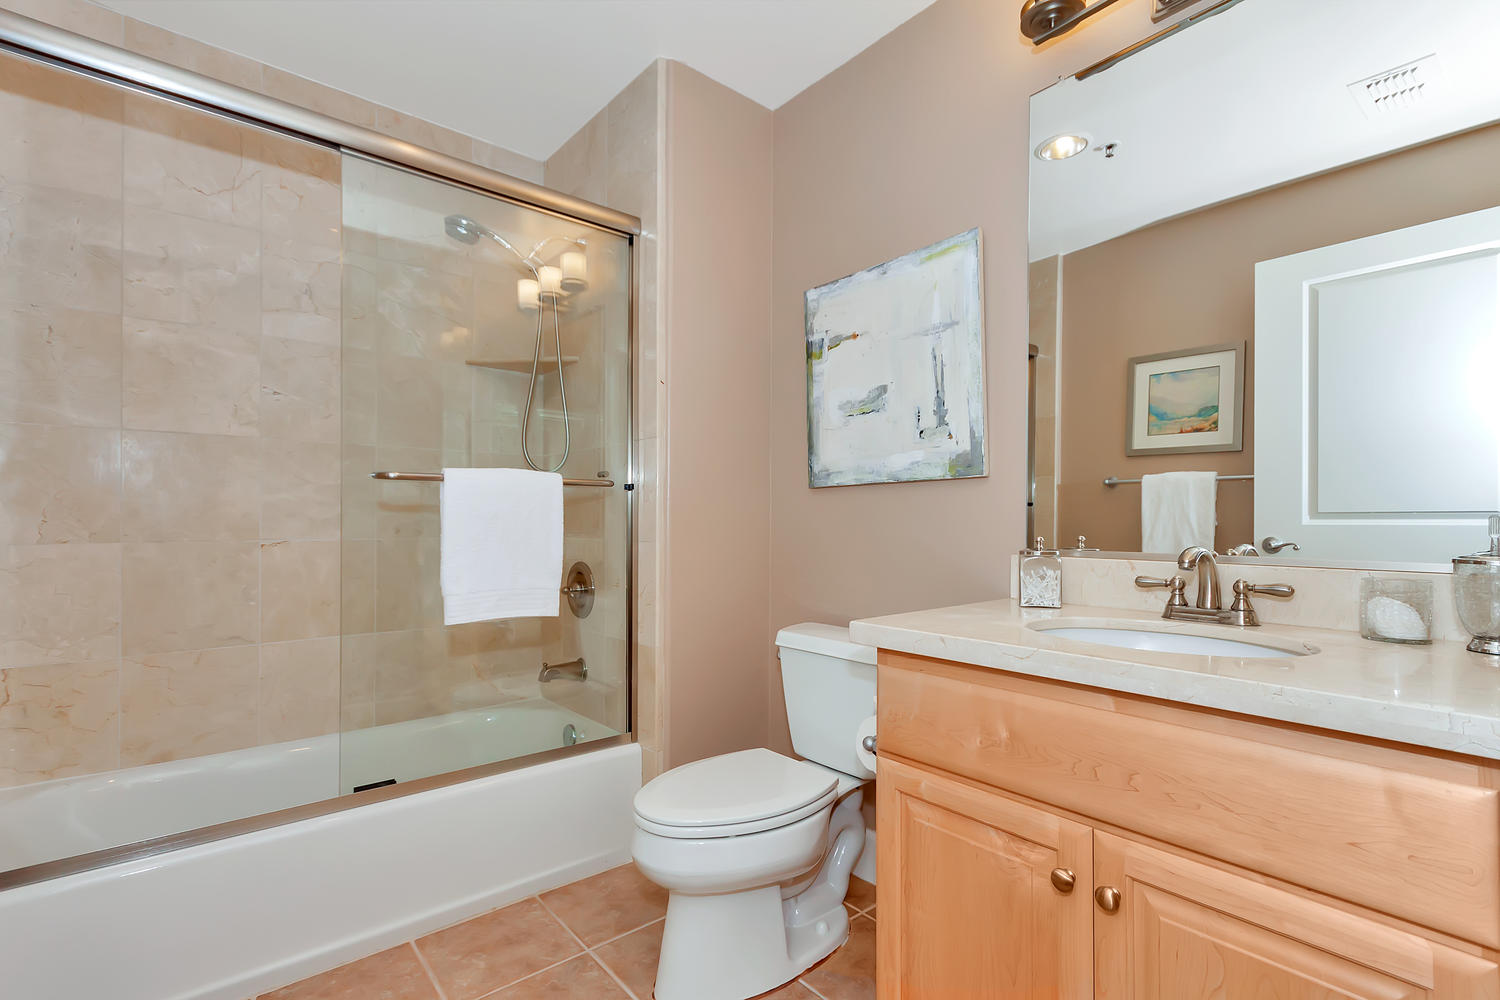 1800 Alma Ave Unit 203 Walnut-large-027-57-Second Bath-1500x1000-72dpi.jpg